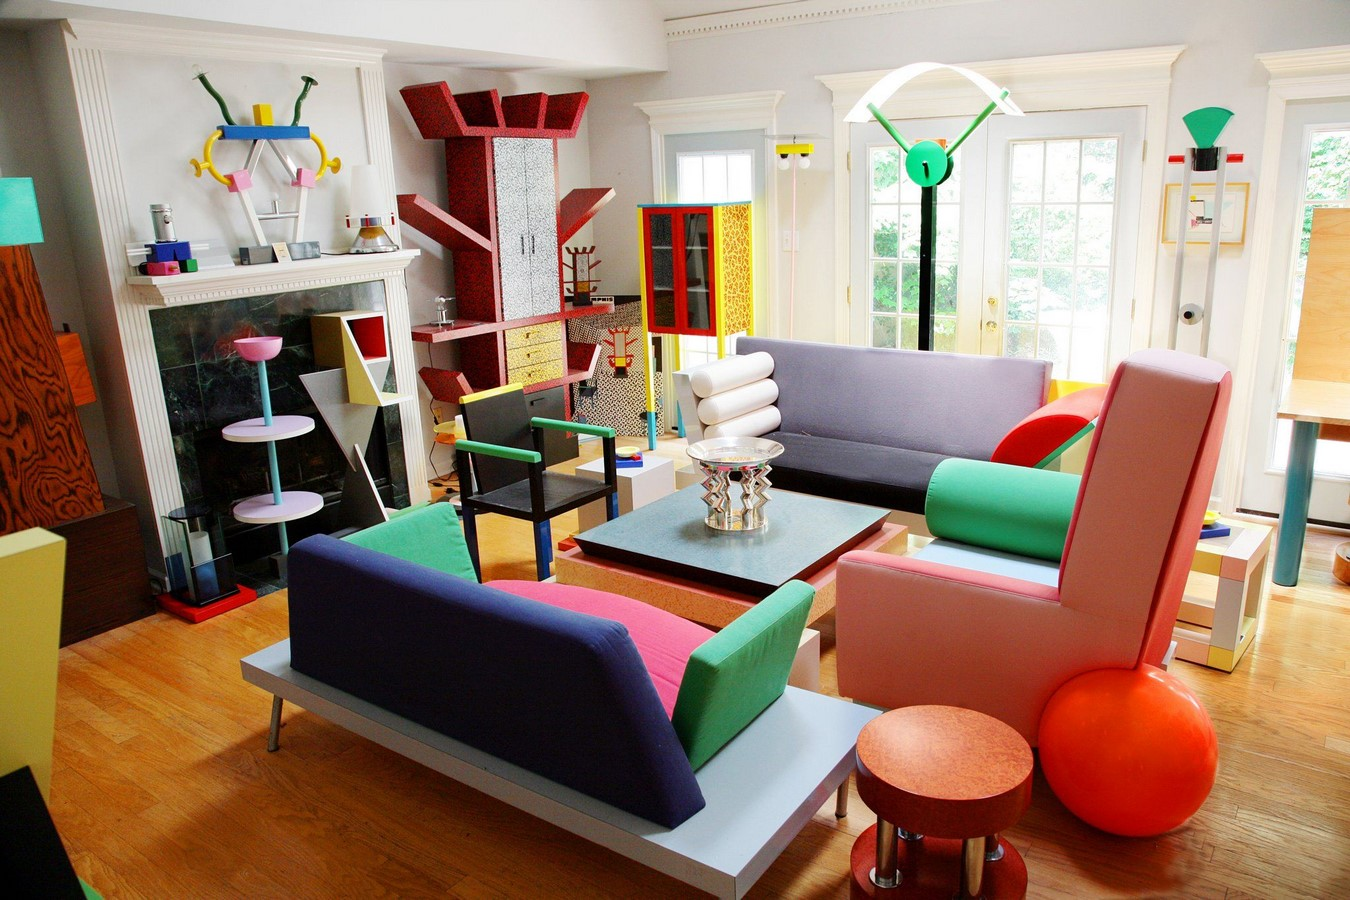 What impact can bad interiors have on its occupants? - Sheet7